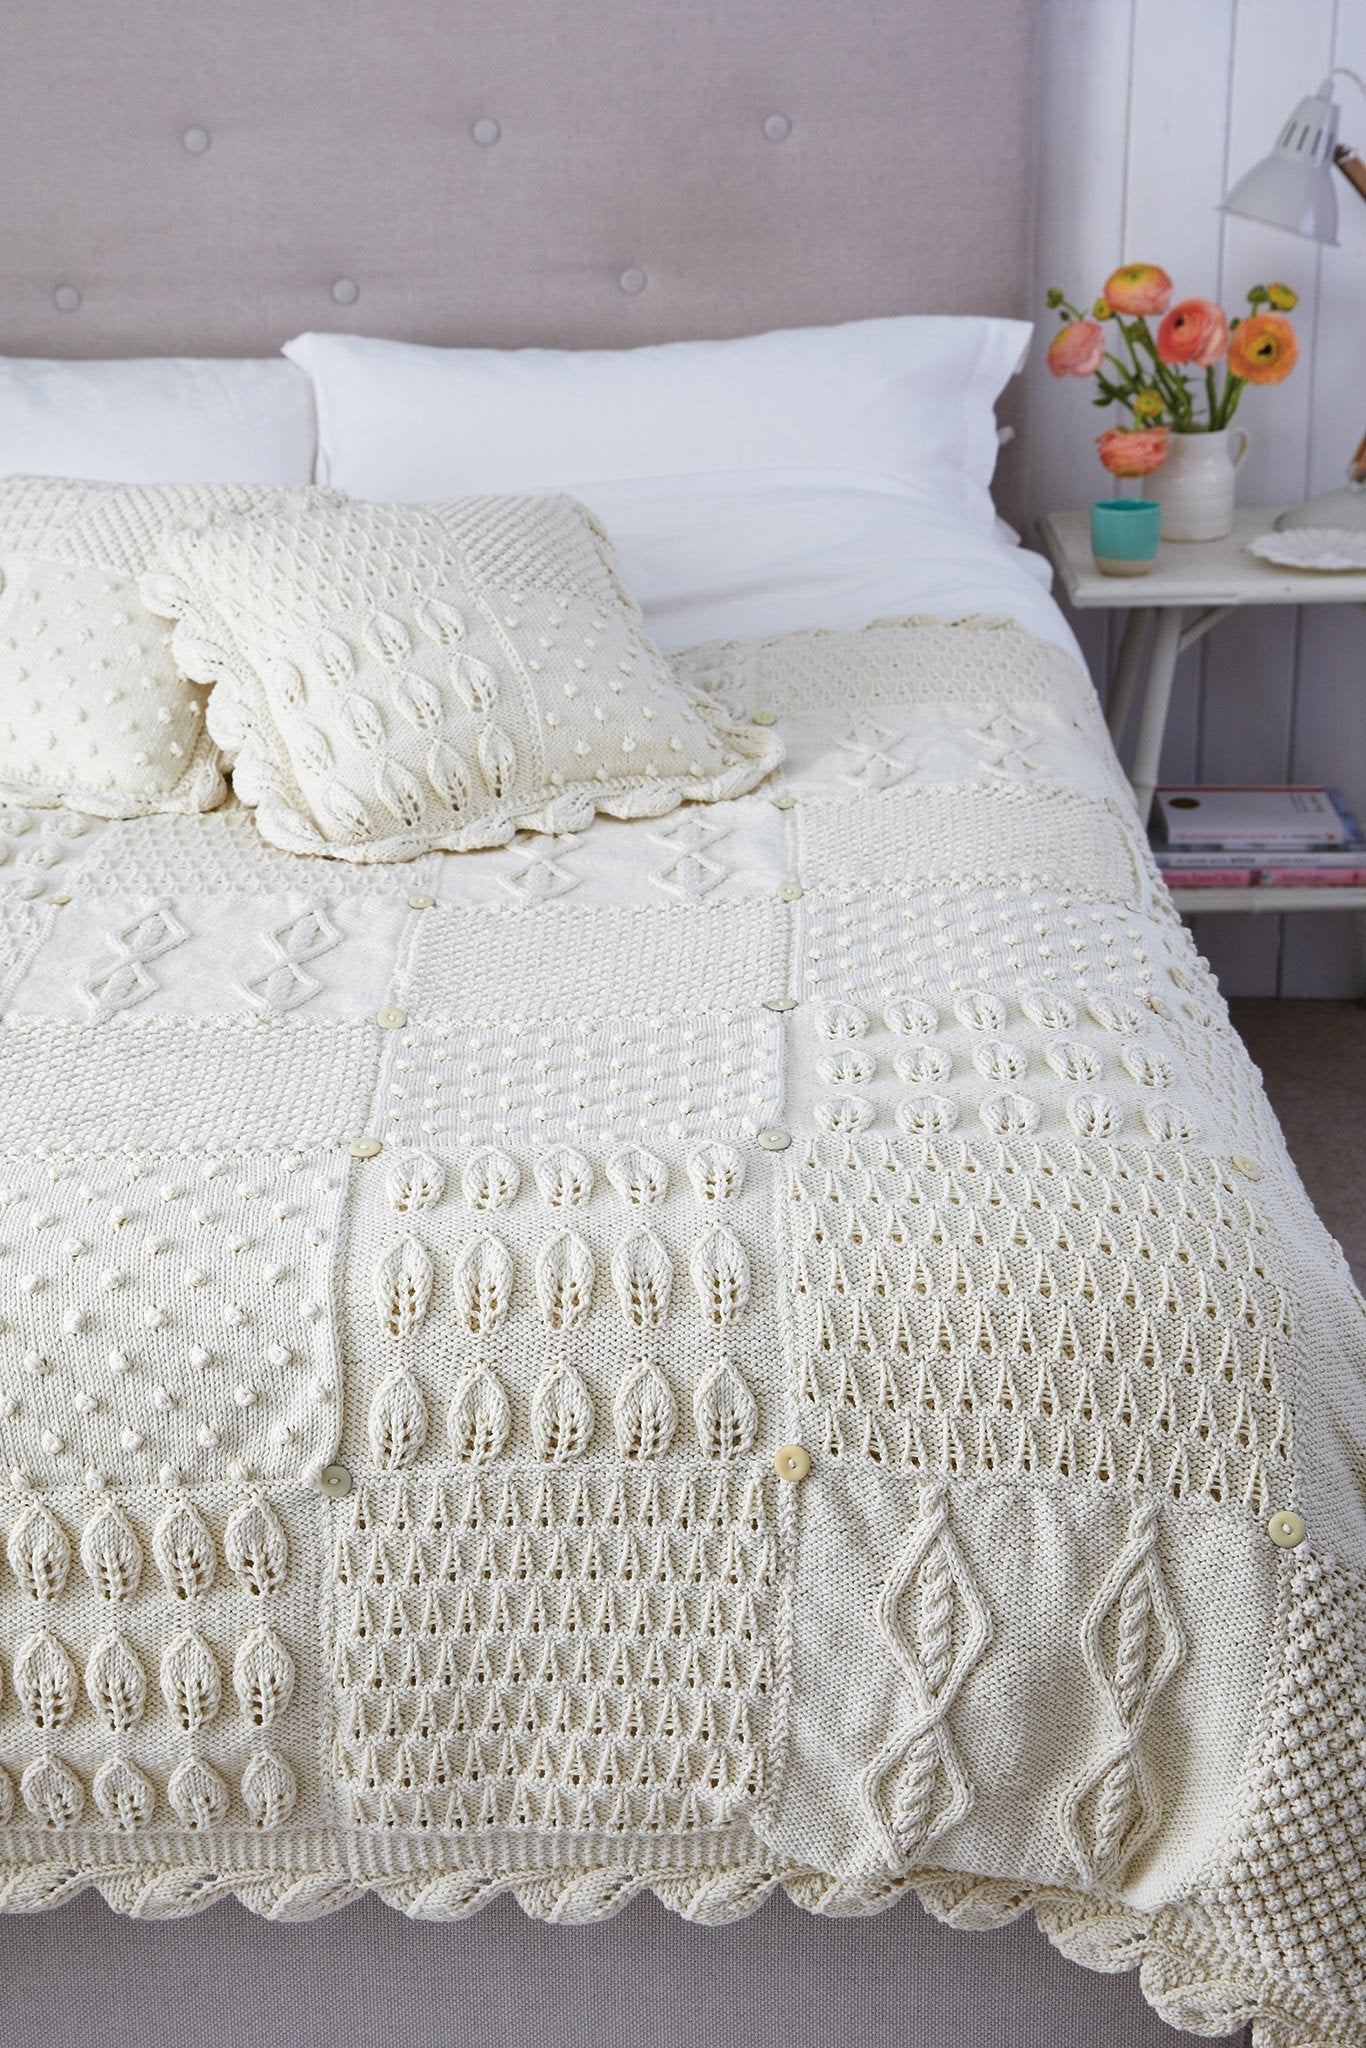 Bed Topper And Cushion Knitting Patterns   The Knitting Network